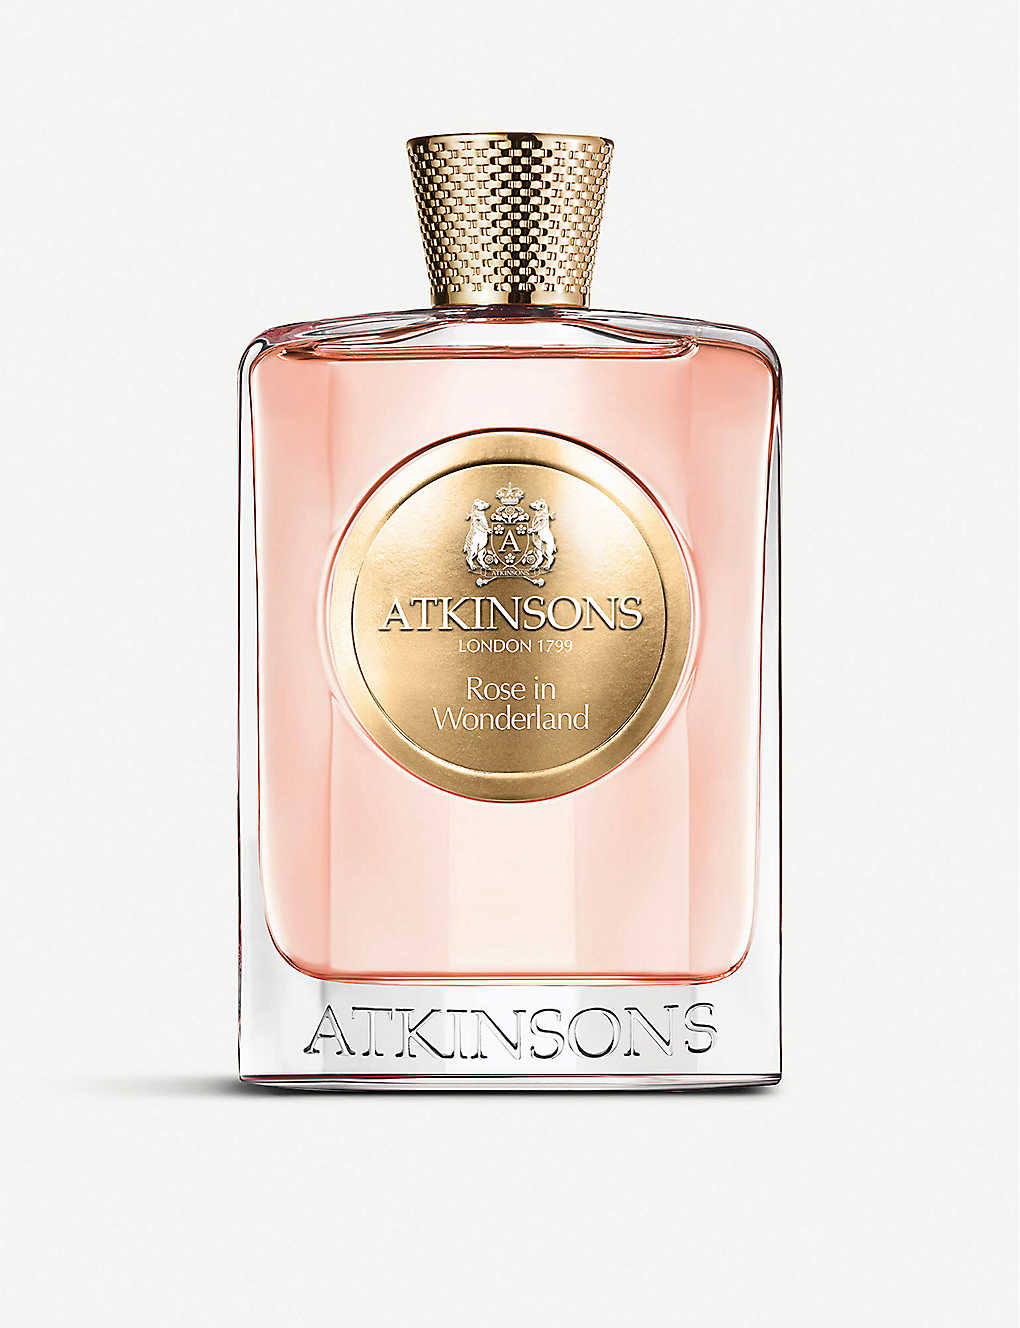 ATKINSONS: Rose in Wonderland eau de parfum 100ml